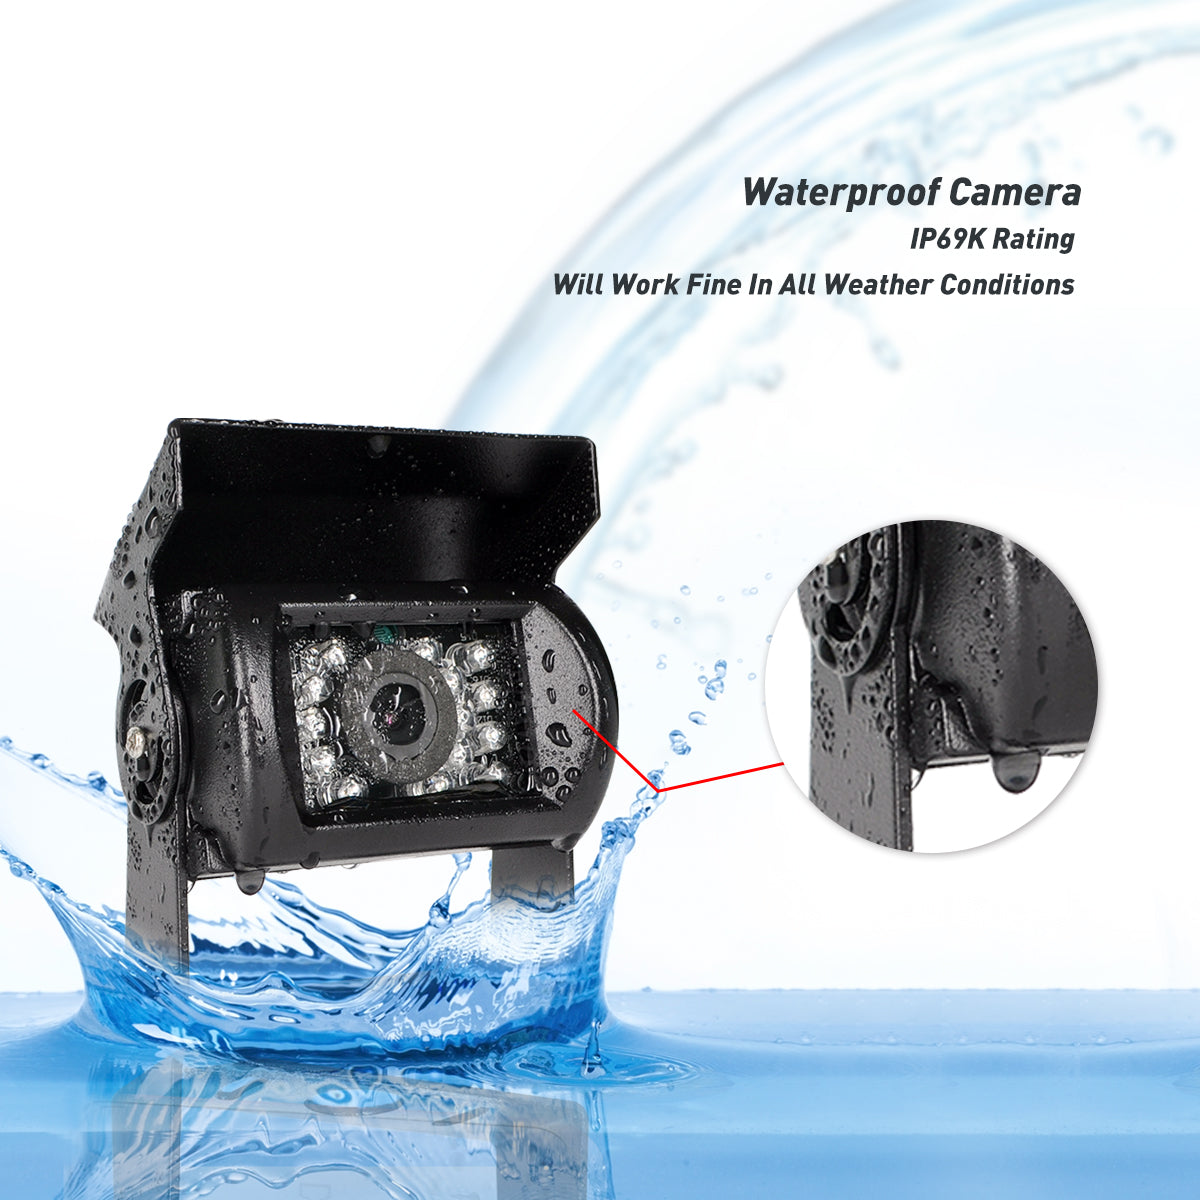 Waterproof backup camera